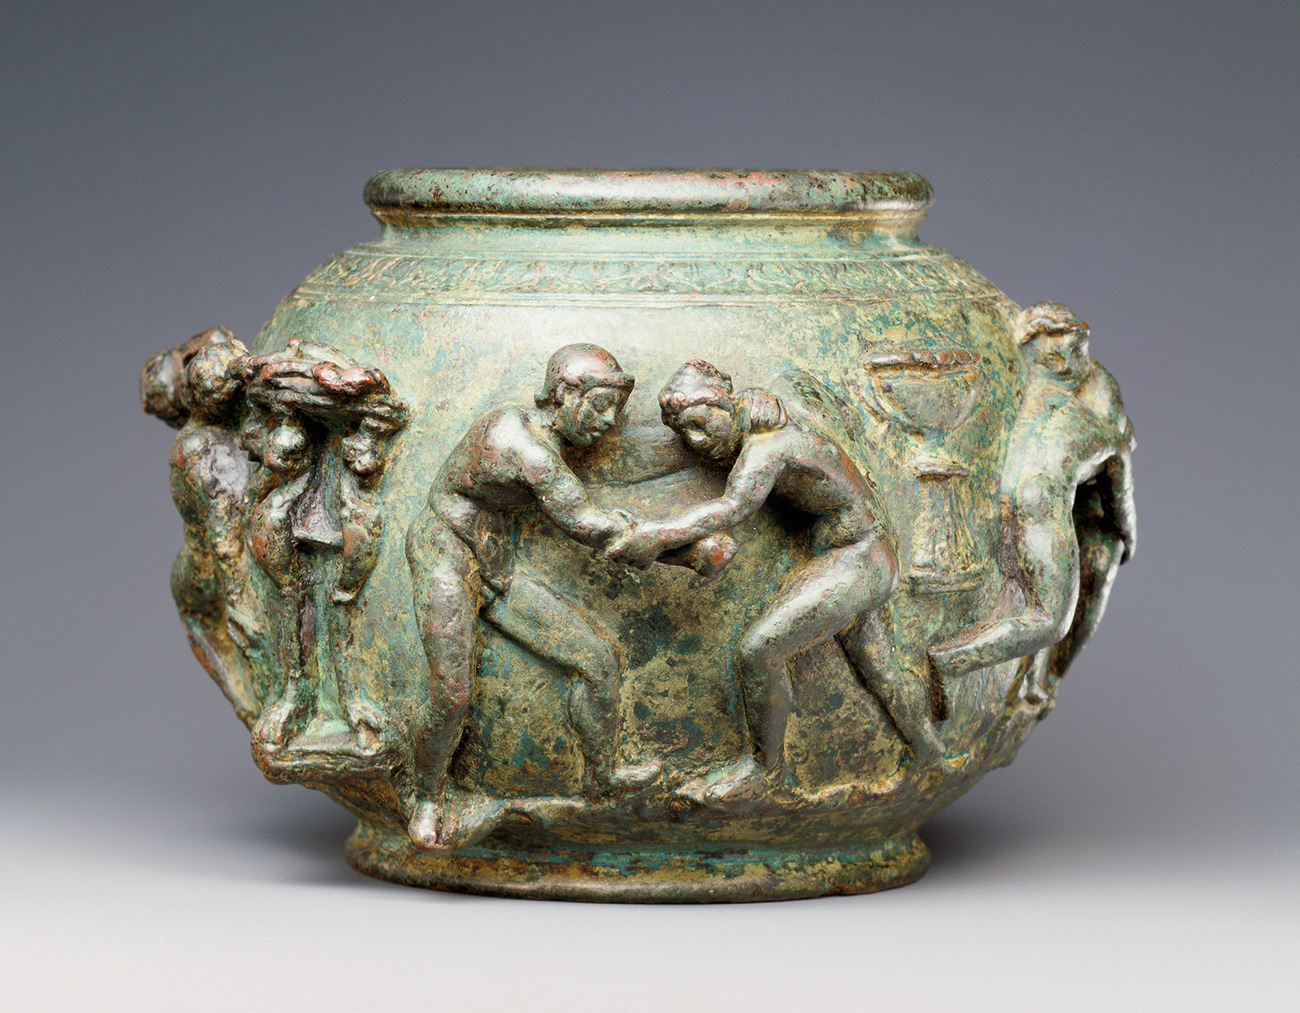 Bronze Roman container showing two naked athletes struggling to gain an advantage over one another during wrestling